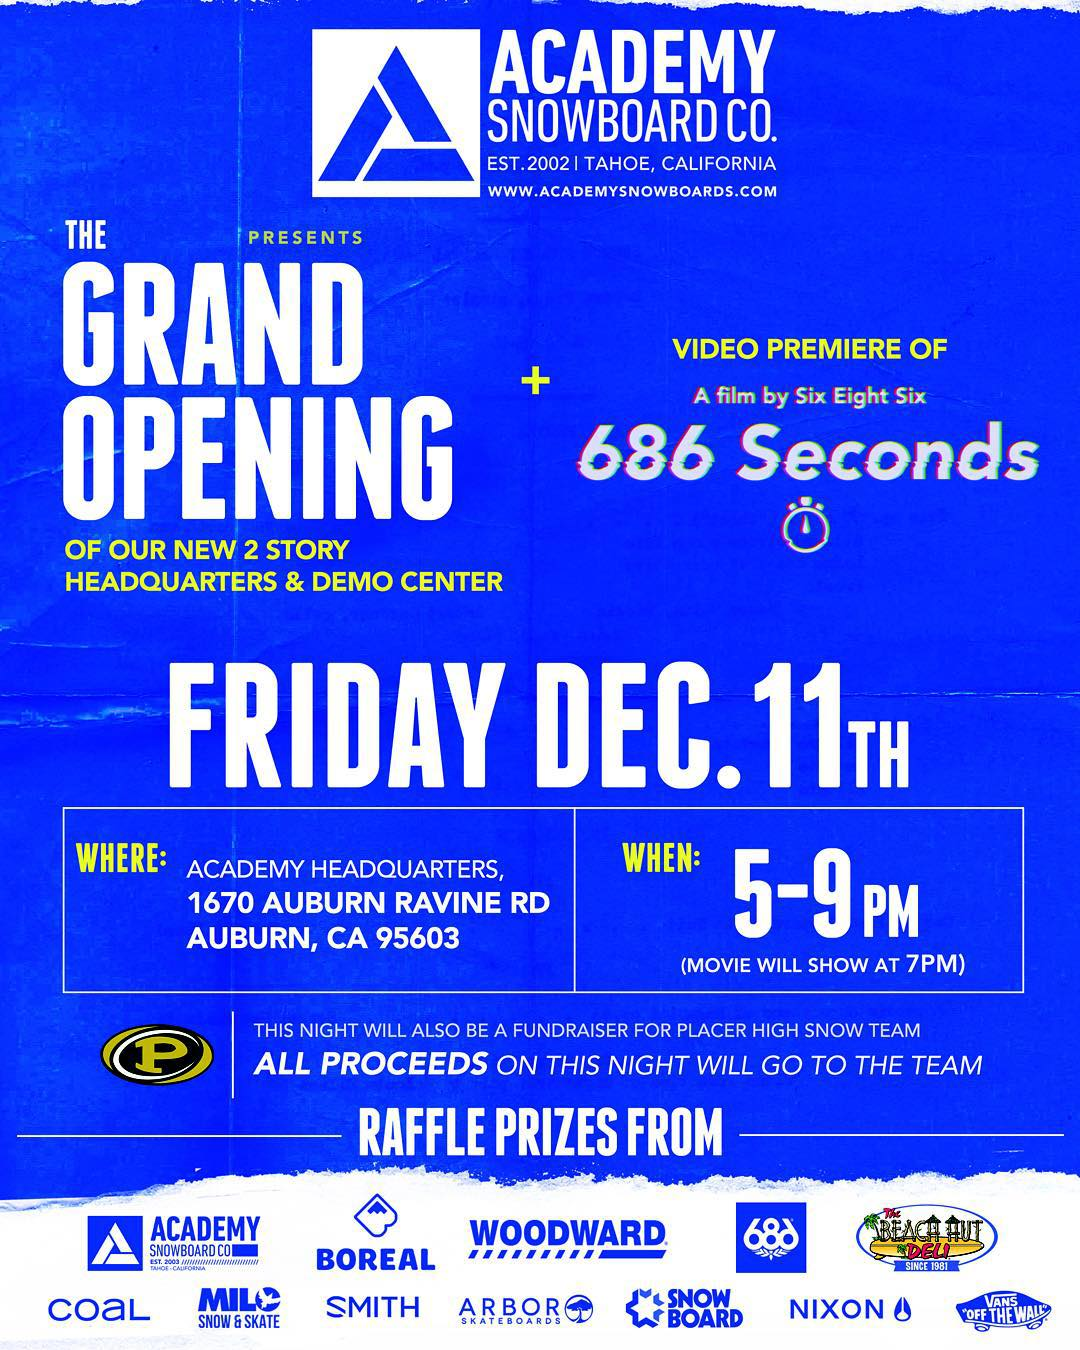 Get up to the new showroom today to check out the new @686 video and enjoy some good food, good drinks, and good times!! With prizes from all your favorite brands!! #supportlocal #goodpeople @beachhutdeliauburn80 @kneedeepbrewingco